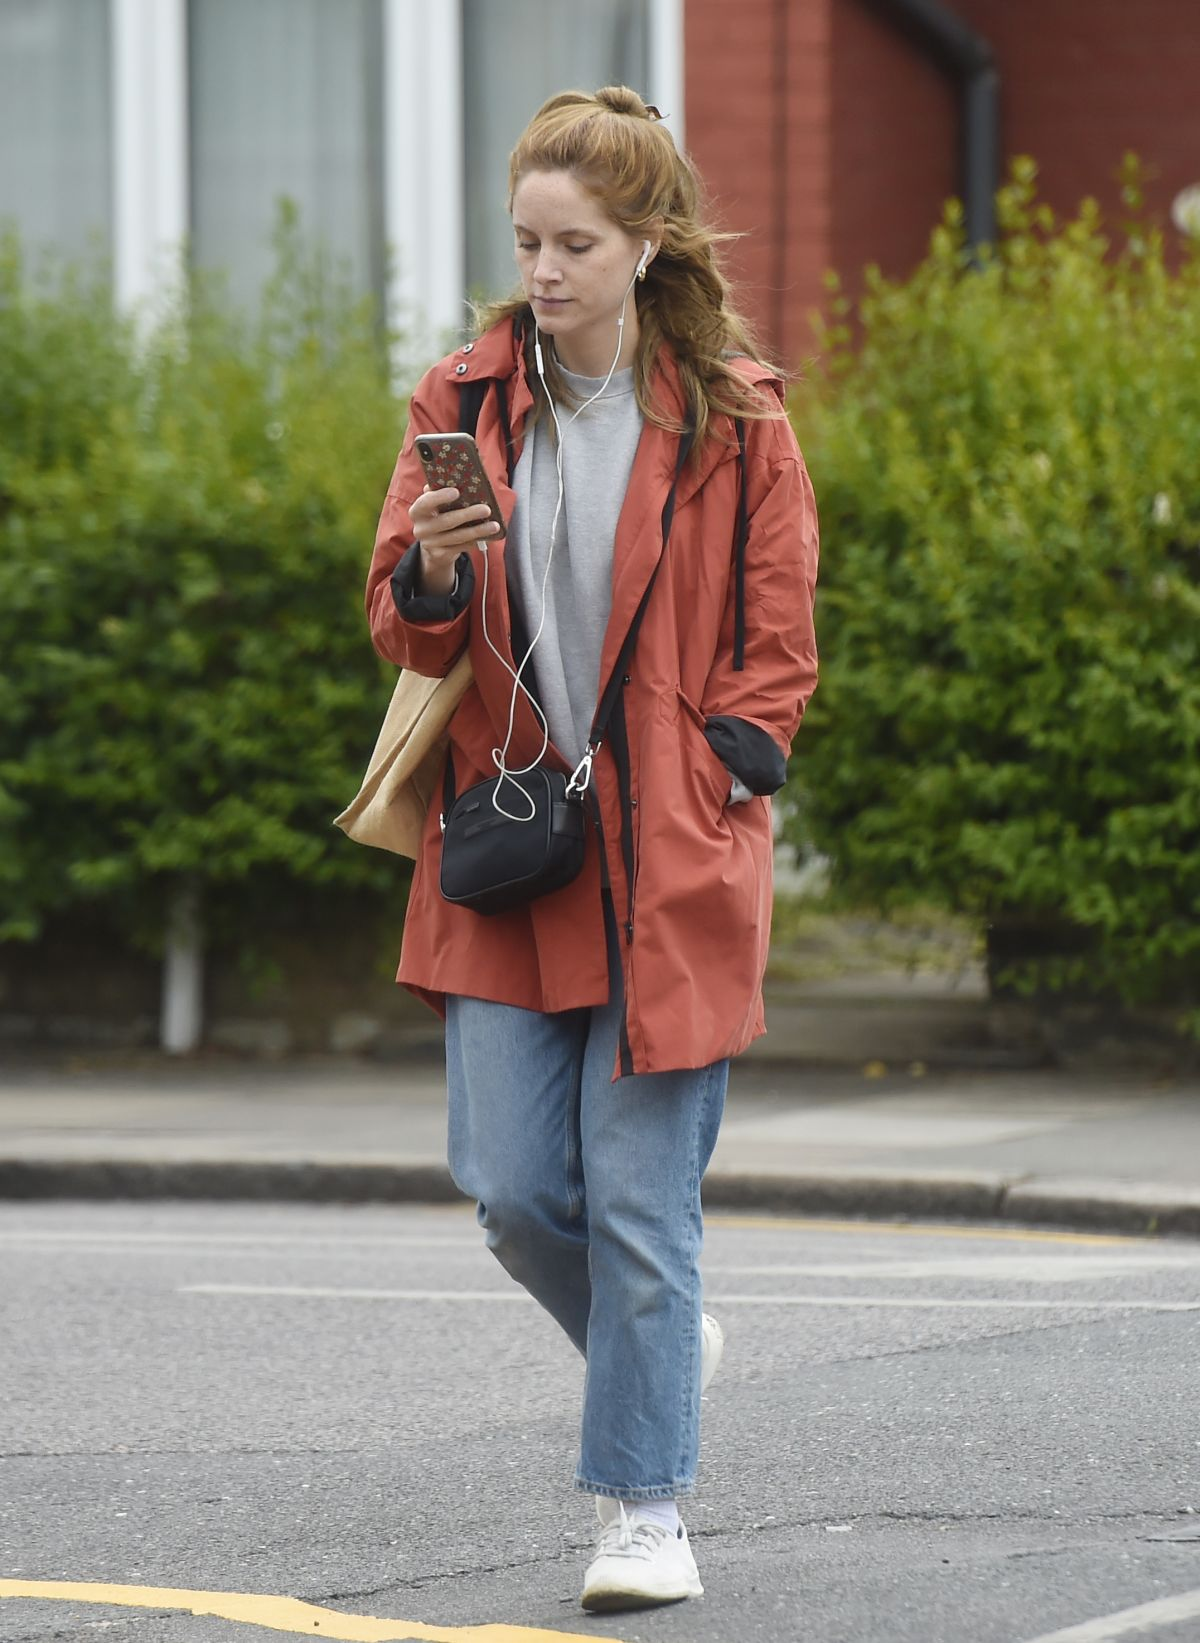 Sophie Rundle Out Shopping in London 2020/06/08 in 2020 | Sophie rundle, Shopping, Sophie